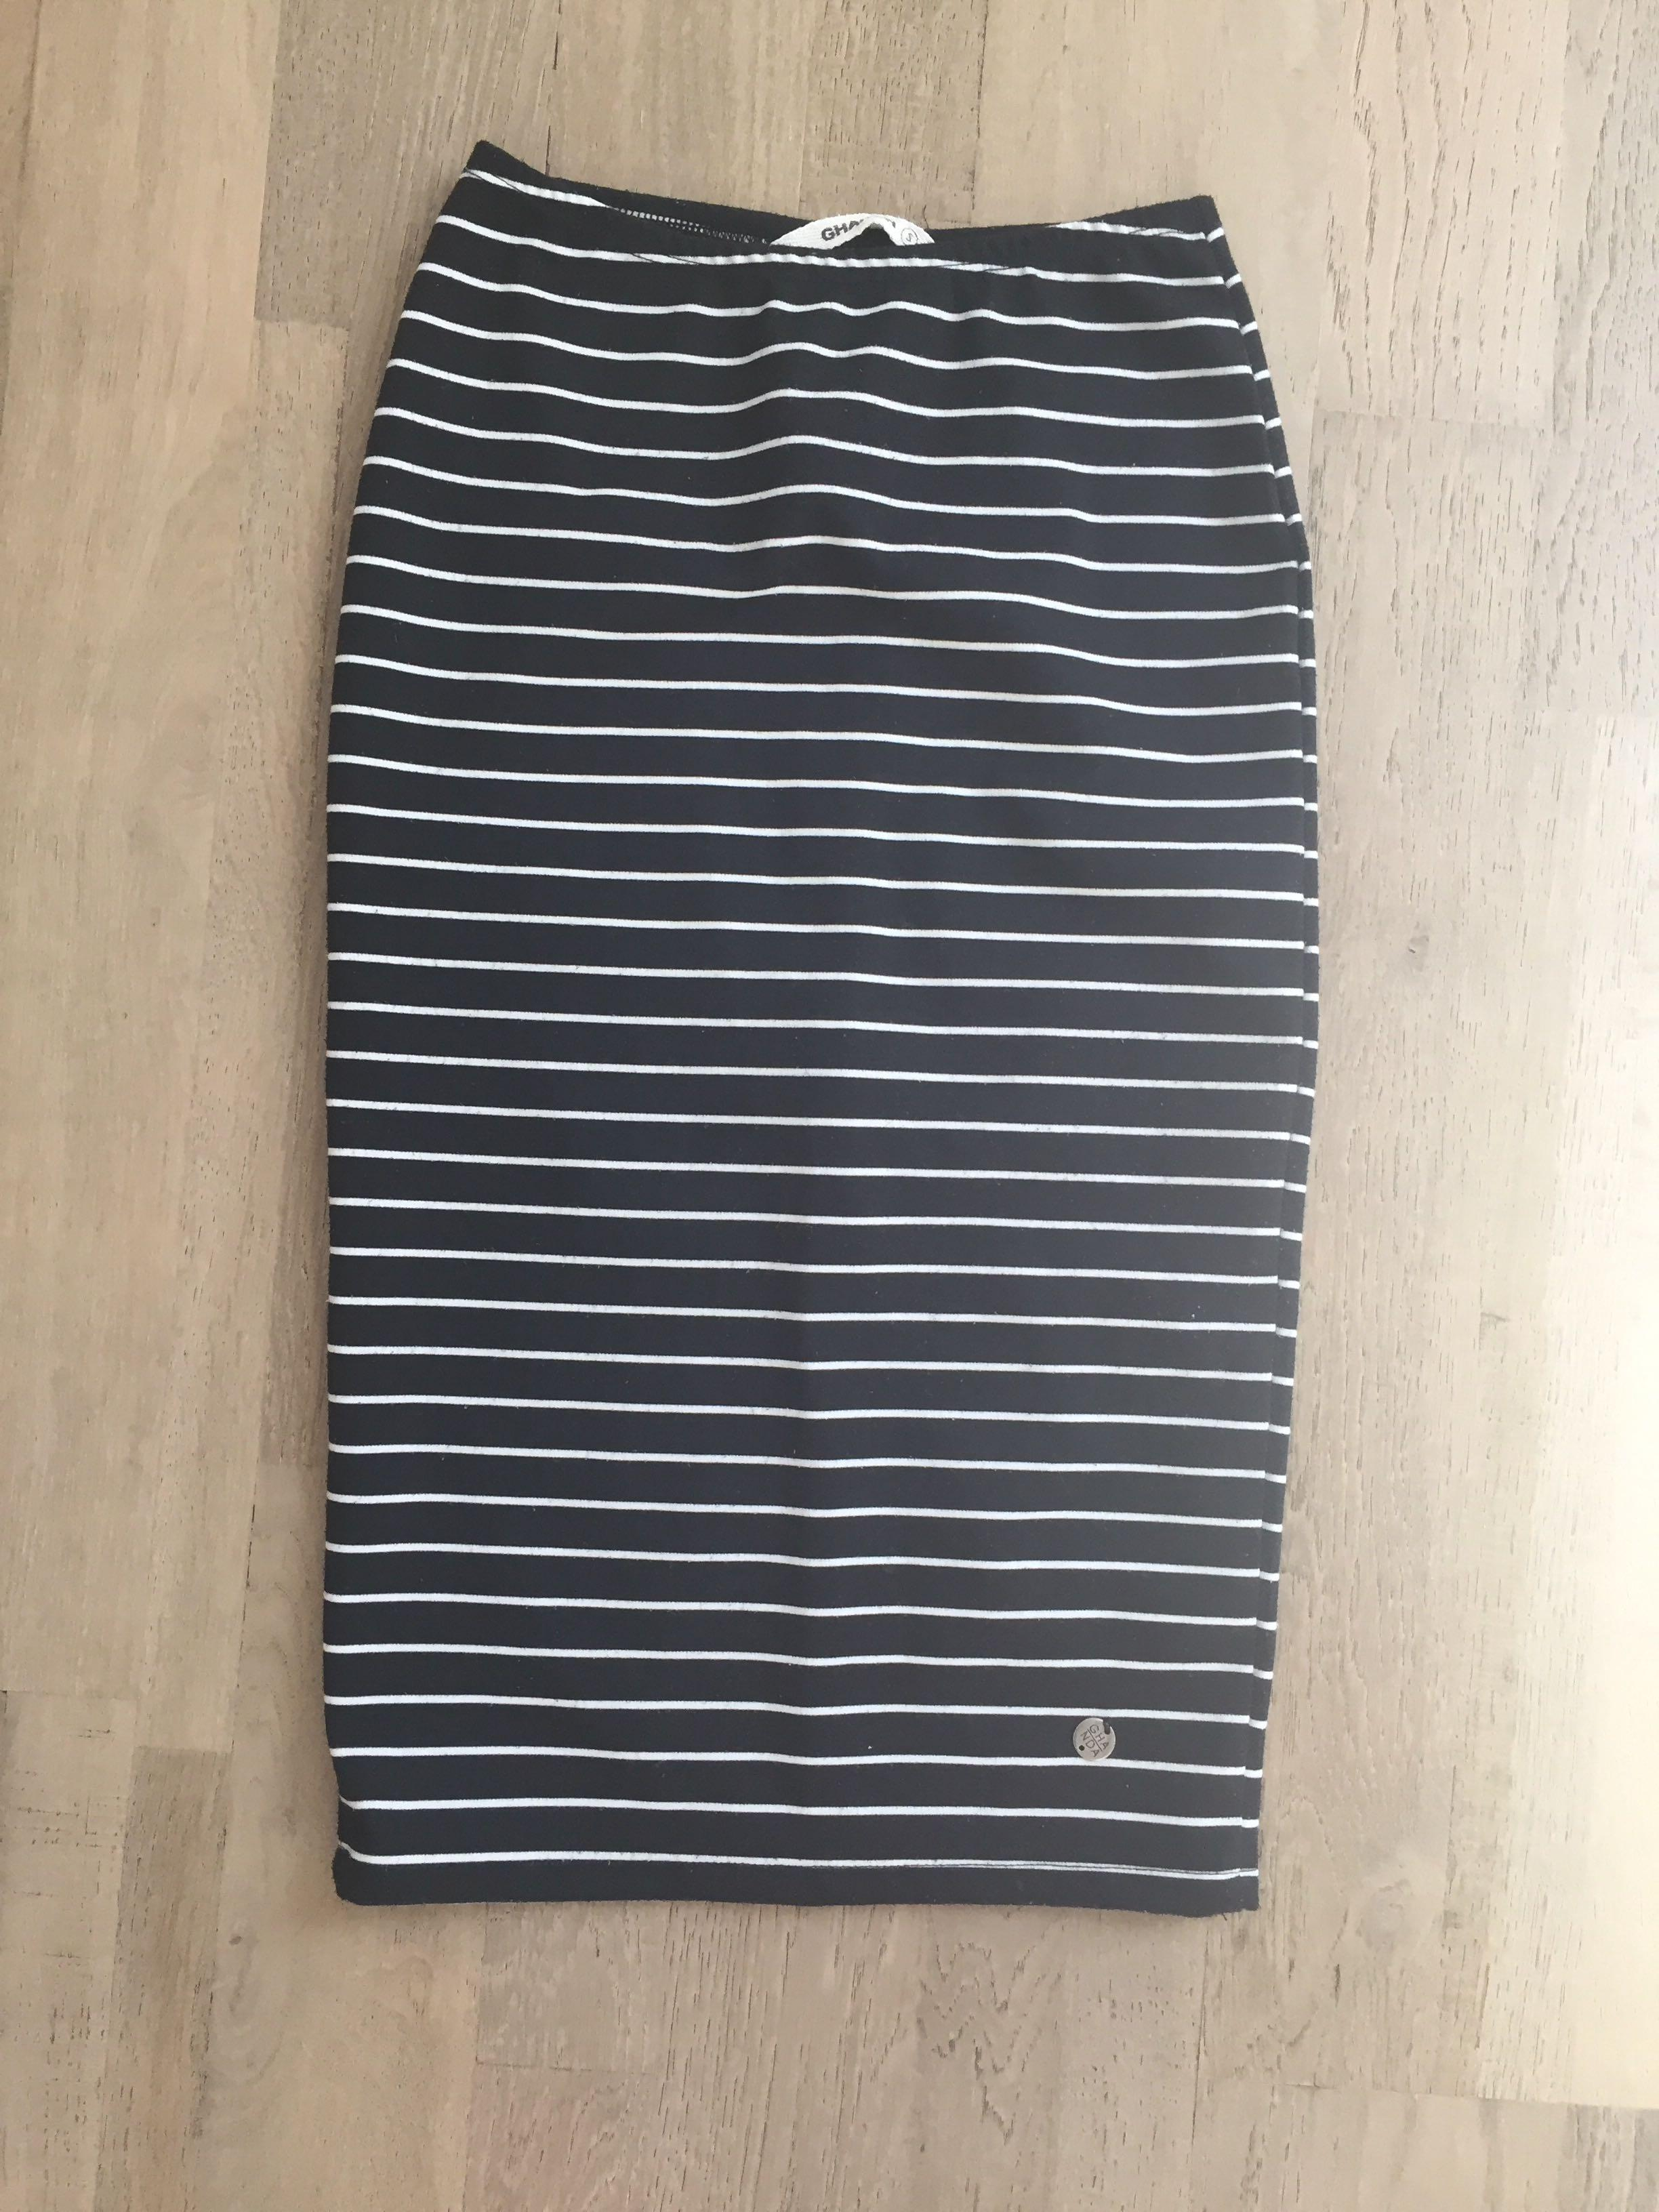 Black and white stripe size small knee length high waisted skirt